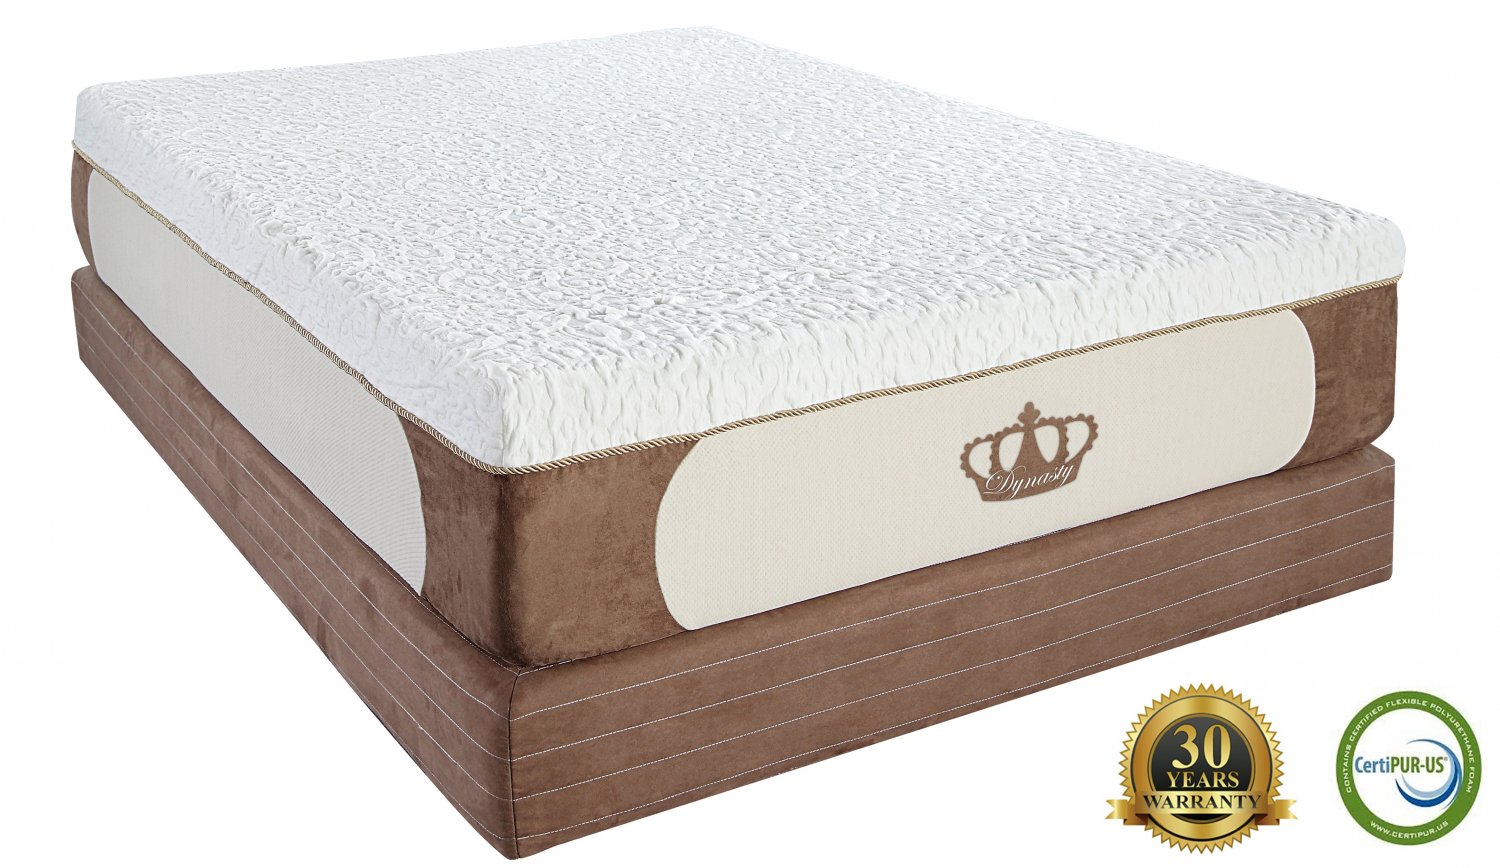 12 Queen Coolbreeze Gel Memory Foam Mattress